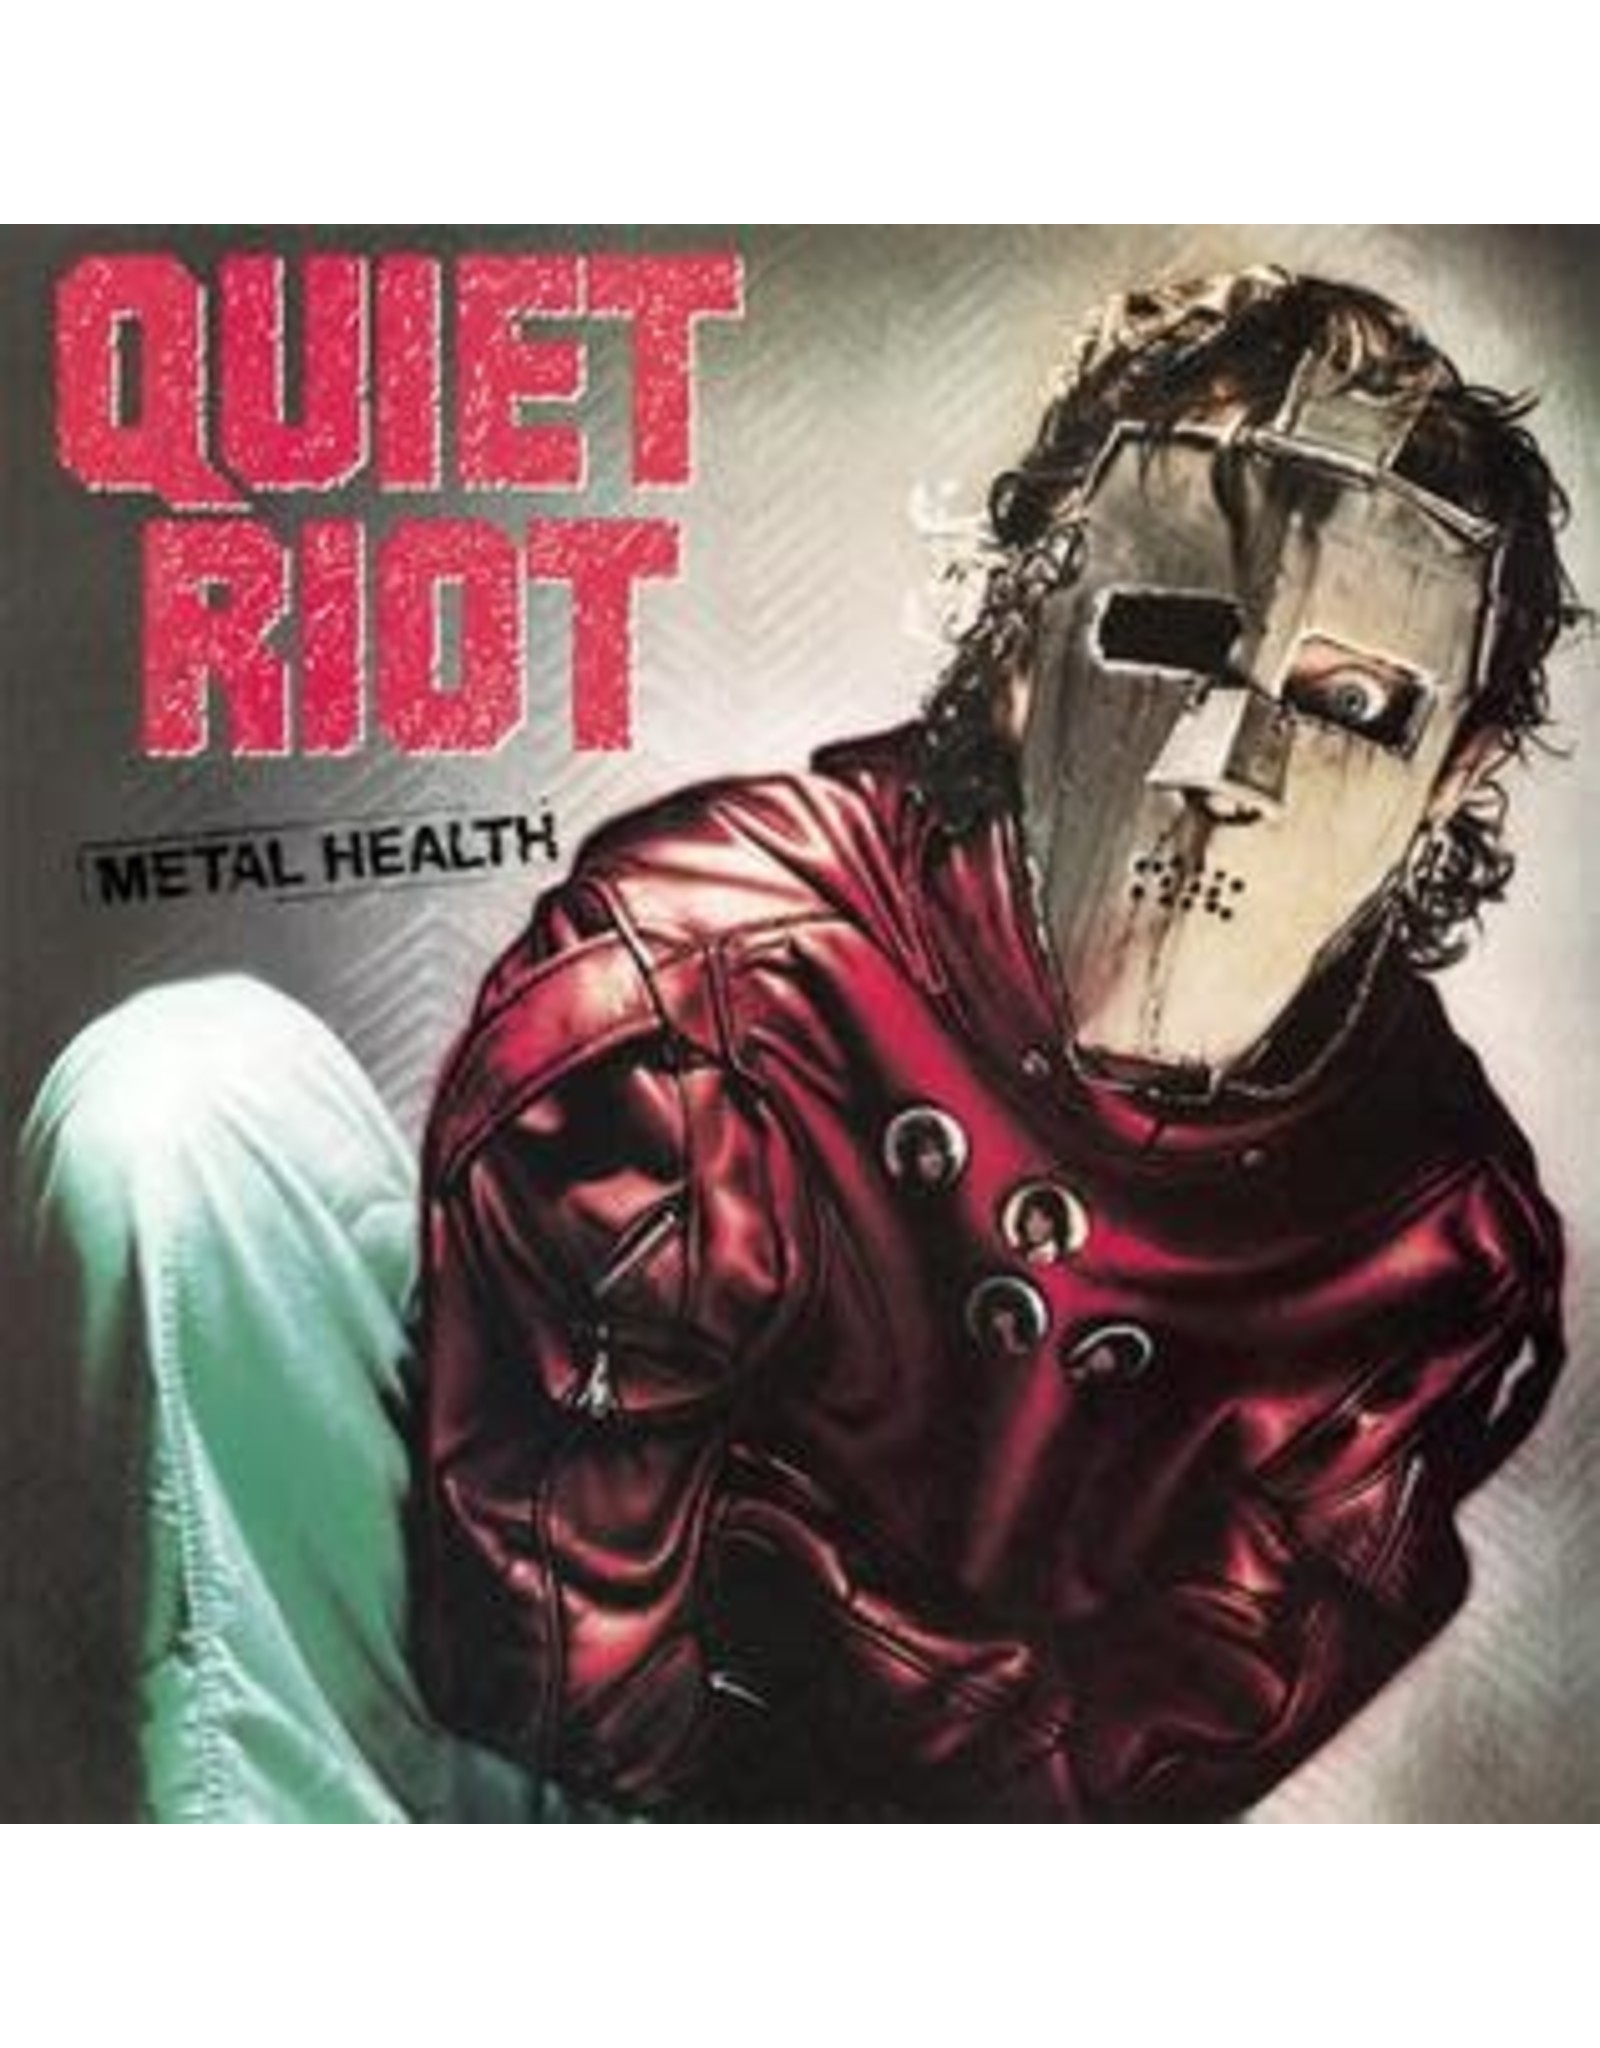 Quiet Riot- Metal Health LP